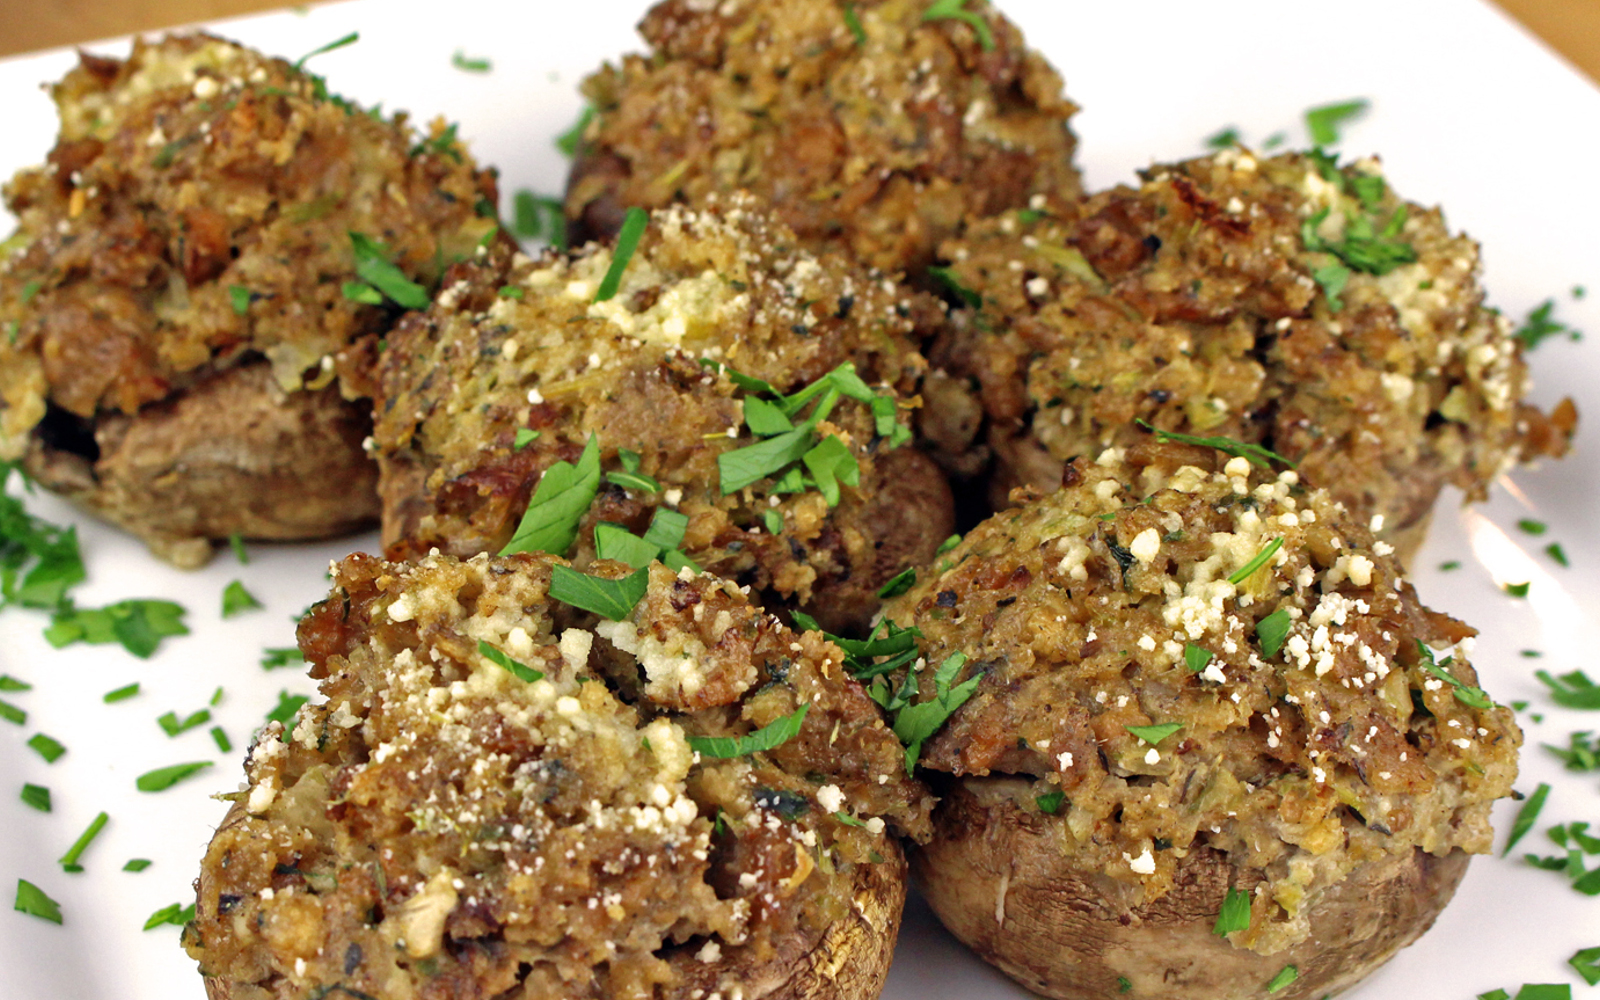 Vegan Sausage Stuffed Mushrooms topped with herbs and spices